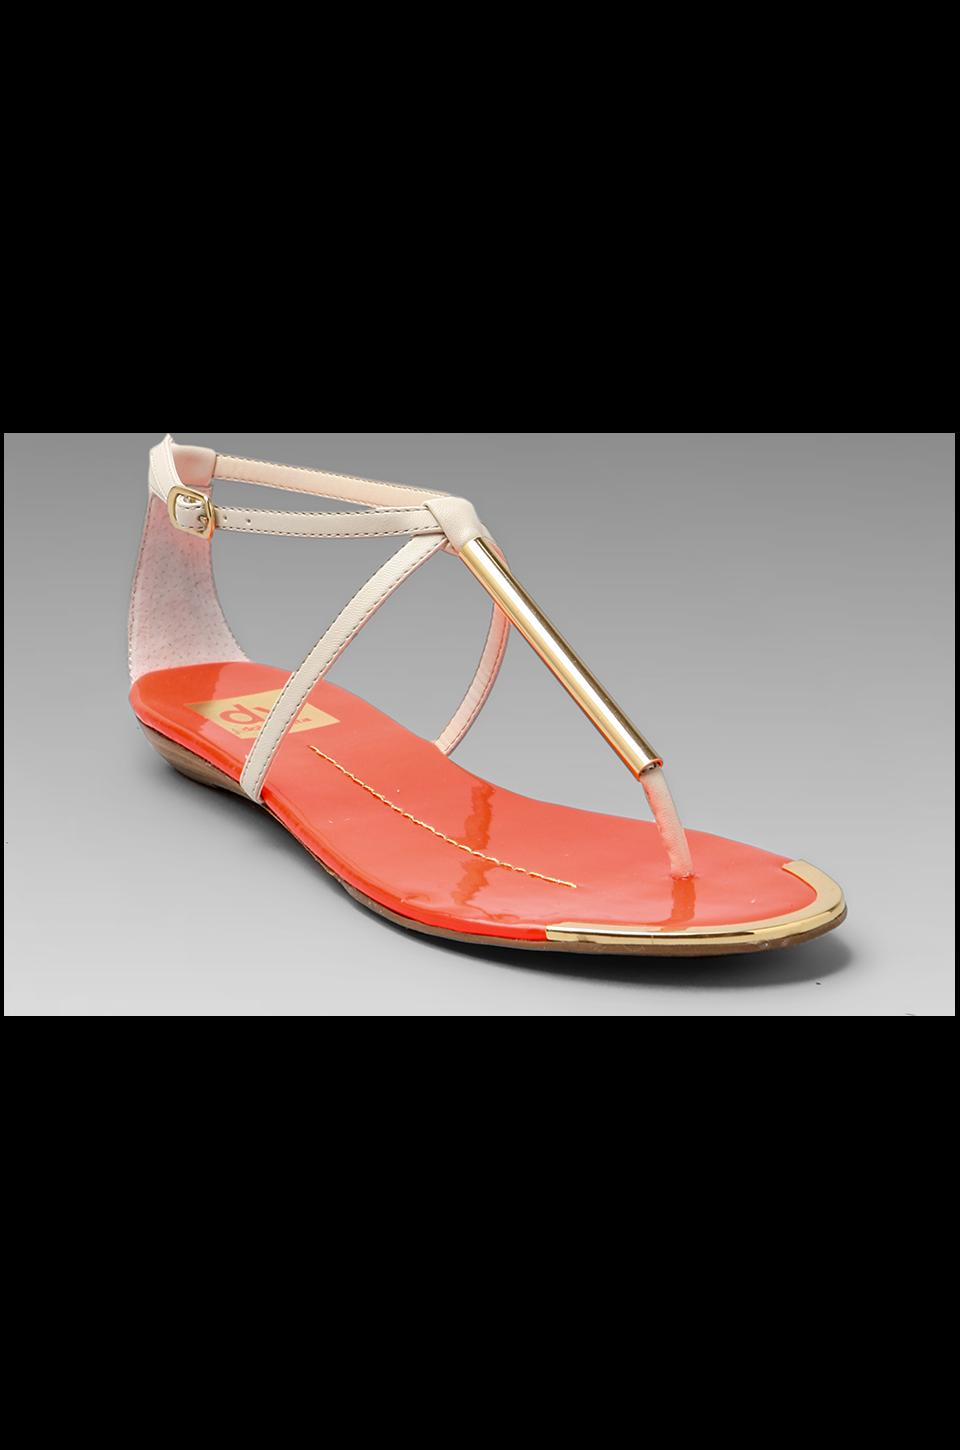 Dolce Vita Archer Sandal in Bone/Orange